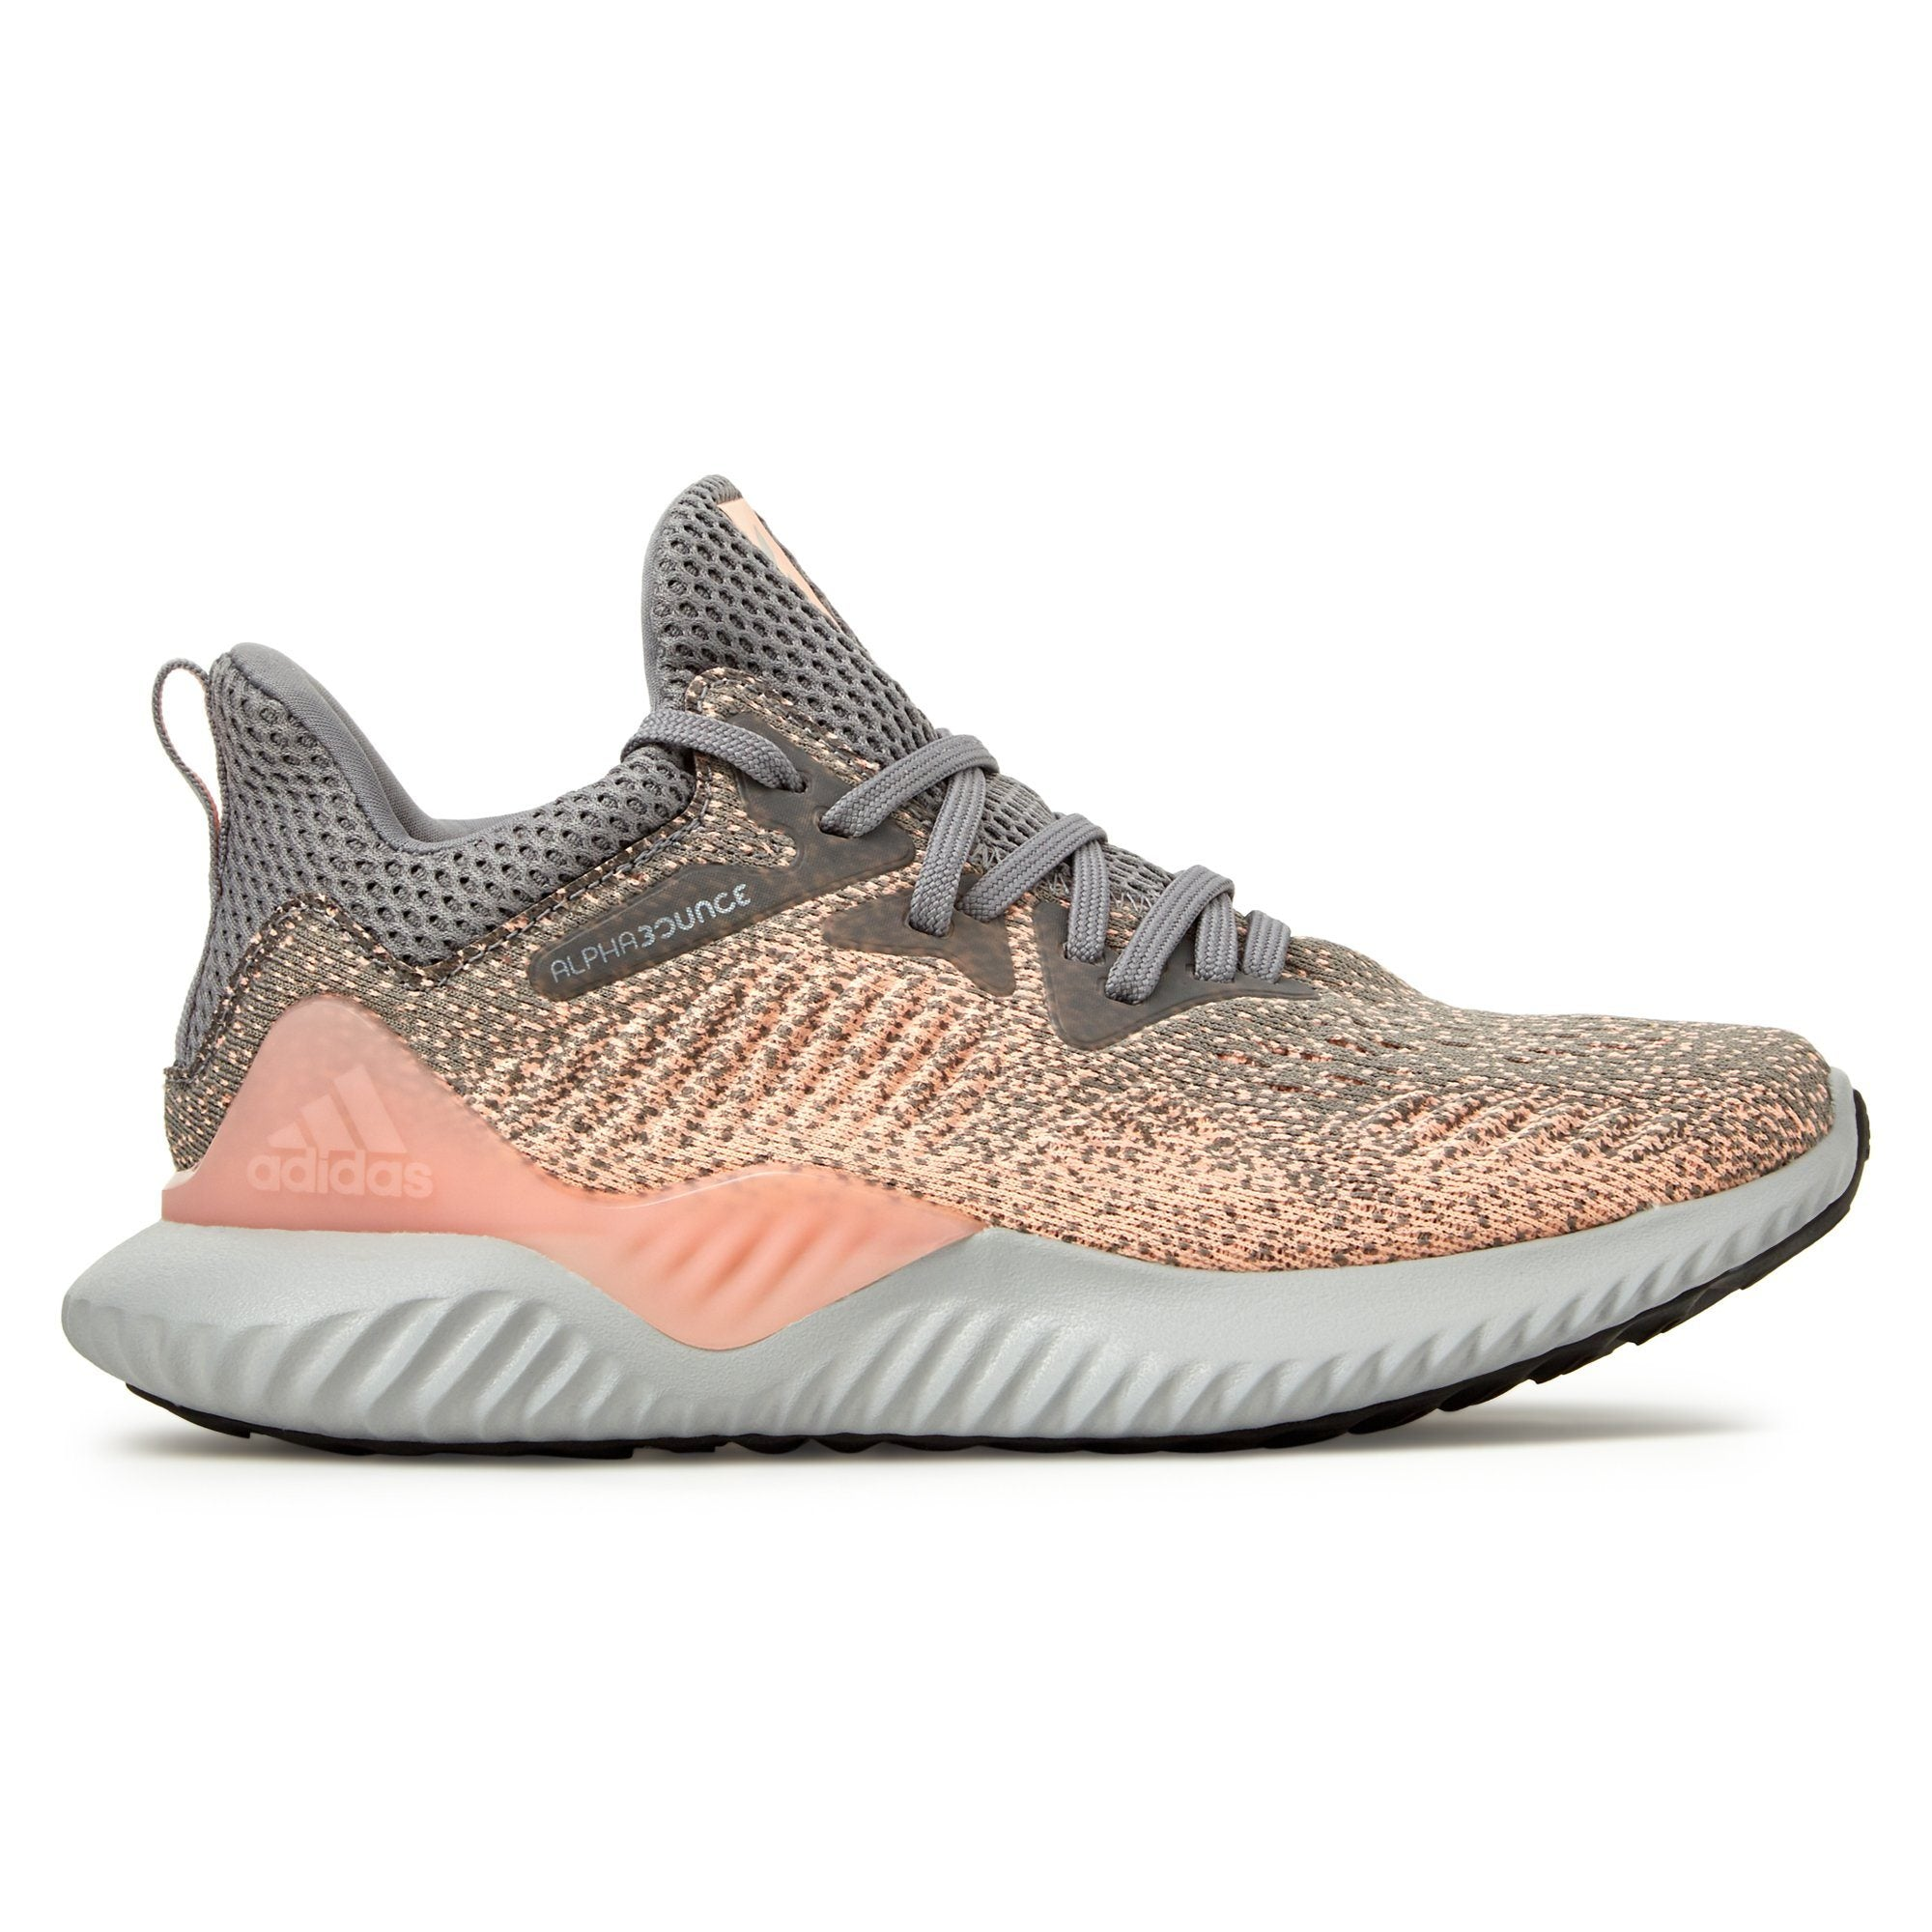 Adidas Kid's Alphabounce Beyond Shoes - Grey Three / Grey Two / Real Magenta Footwear Adidas  (2022904758331)